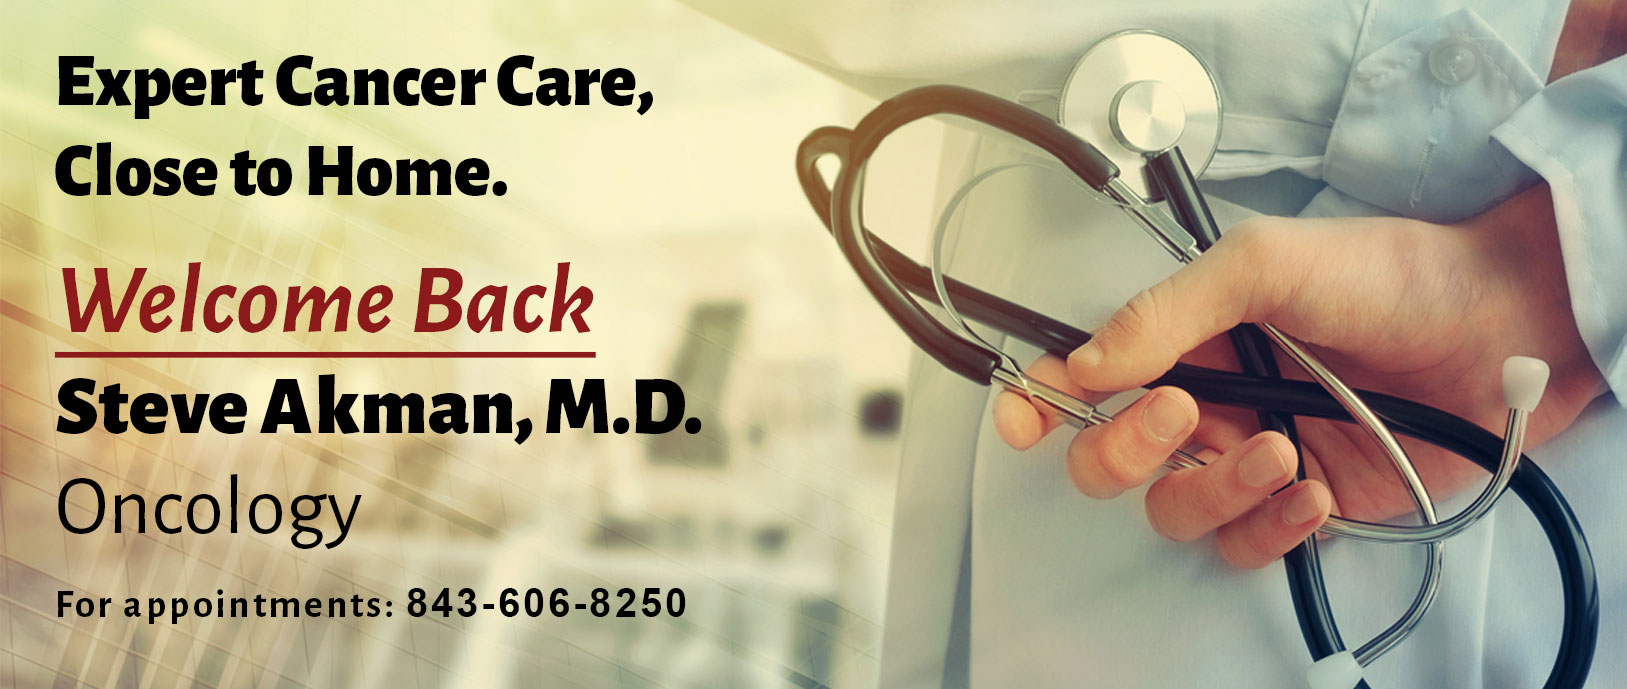 Expert Cancer Care Close to home. Wlecome back Steve Akman, M.D. Oncology.  For appointments: 843-606-8250